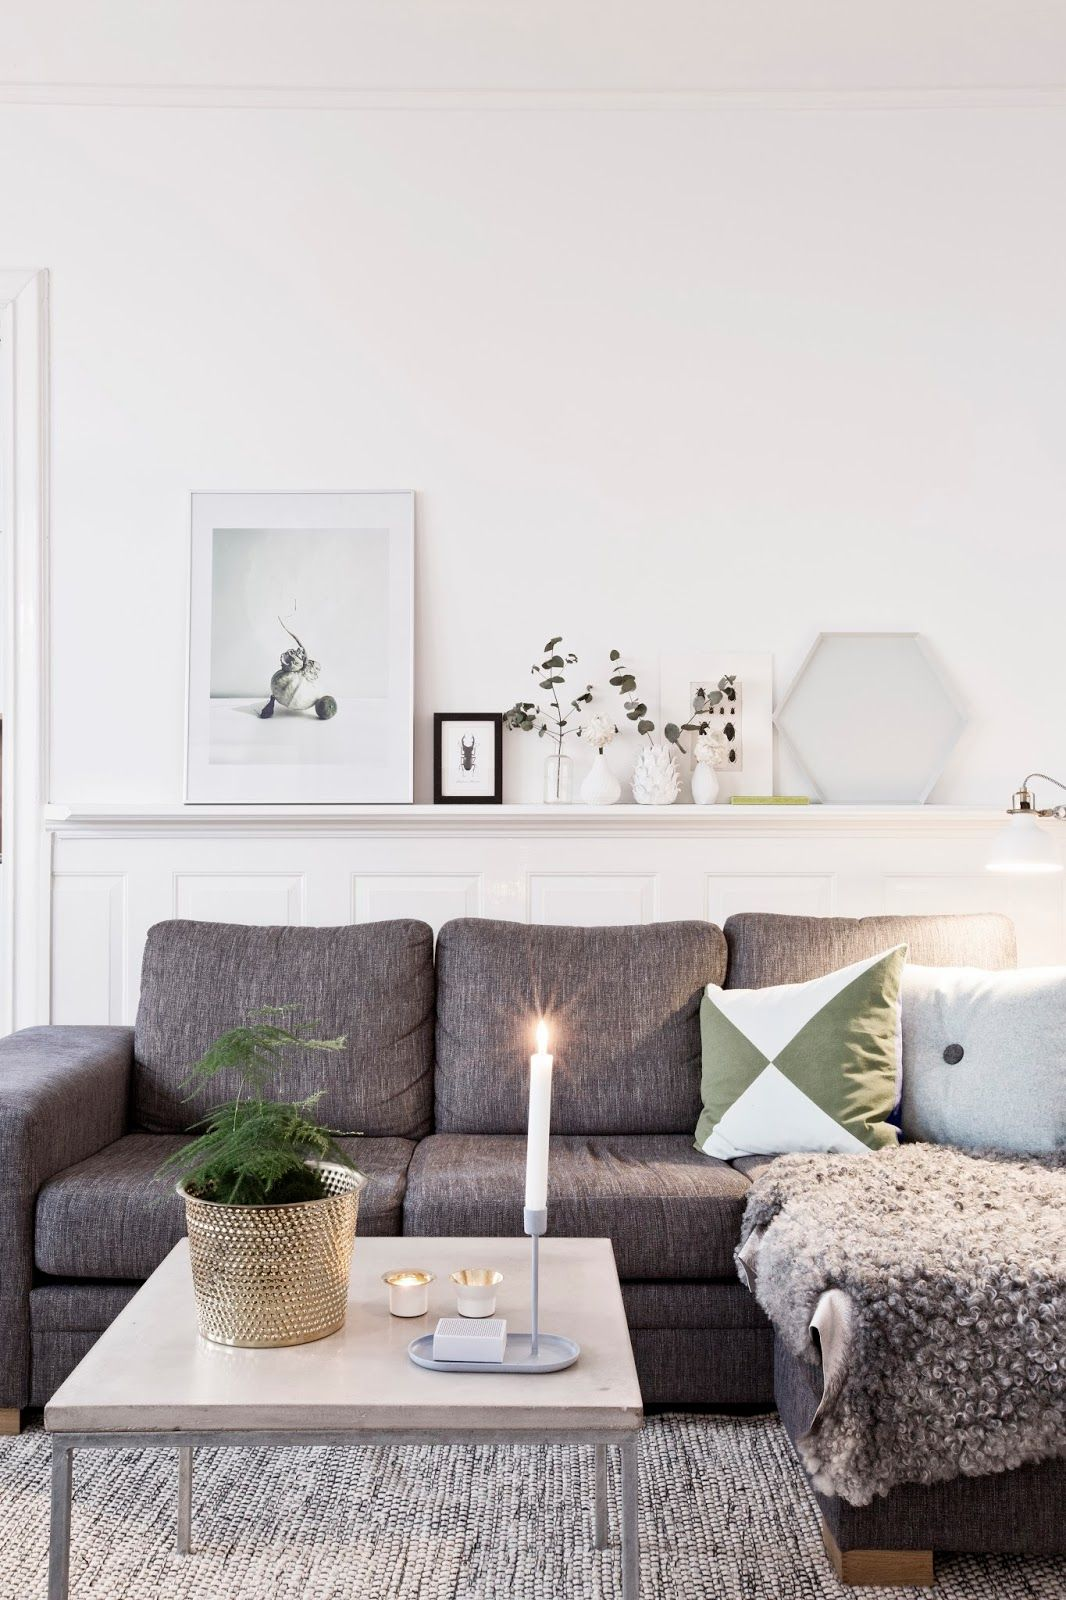 Ambiance Scandinave Salon Salon Ambiance Scandinave Decor Pinterest